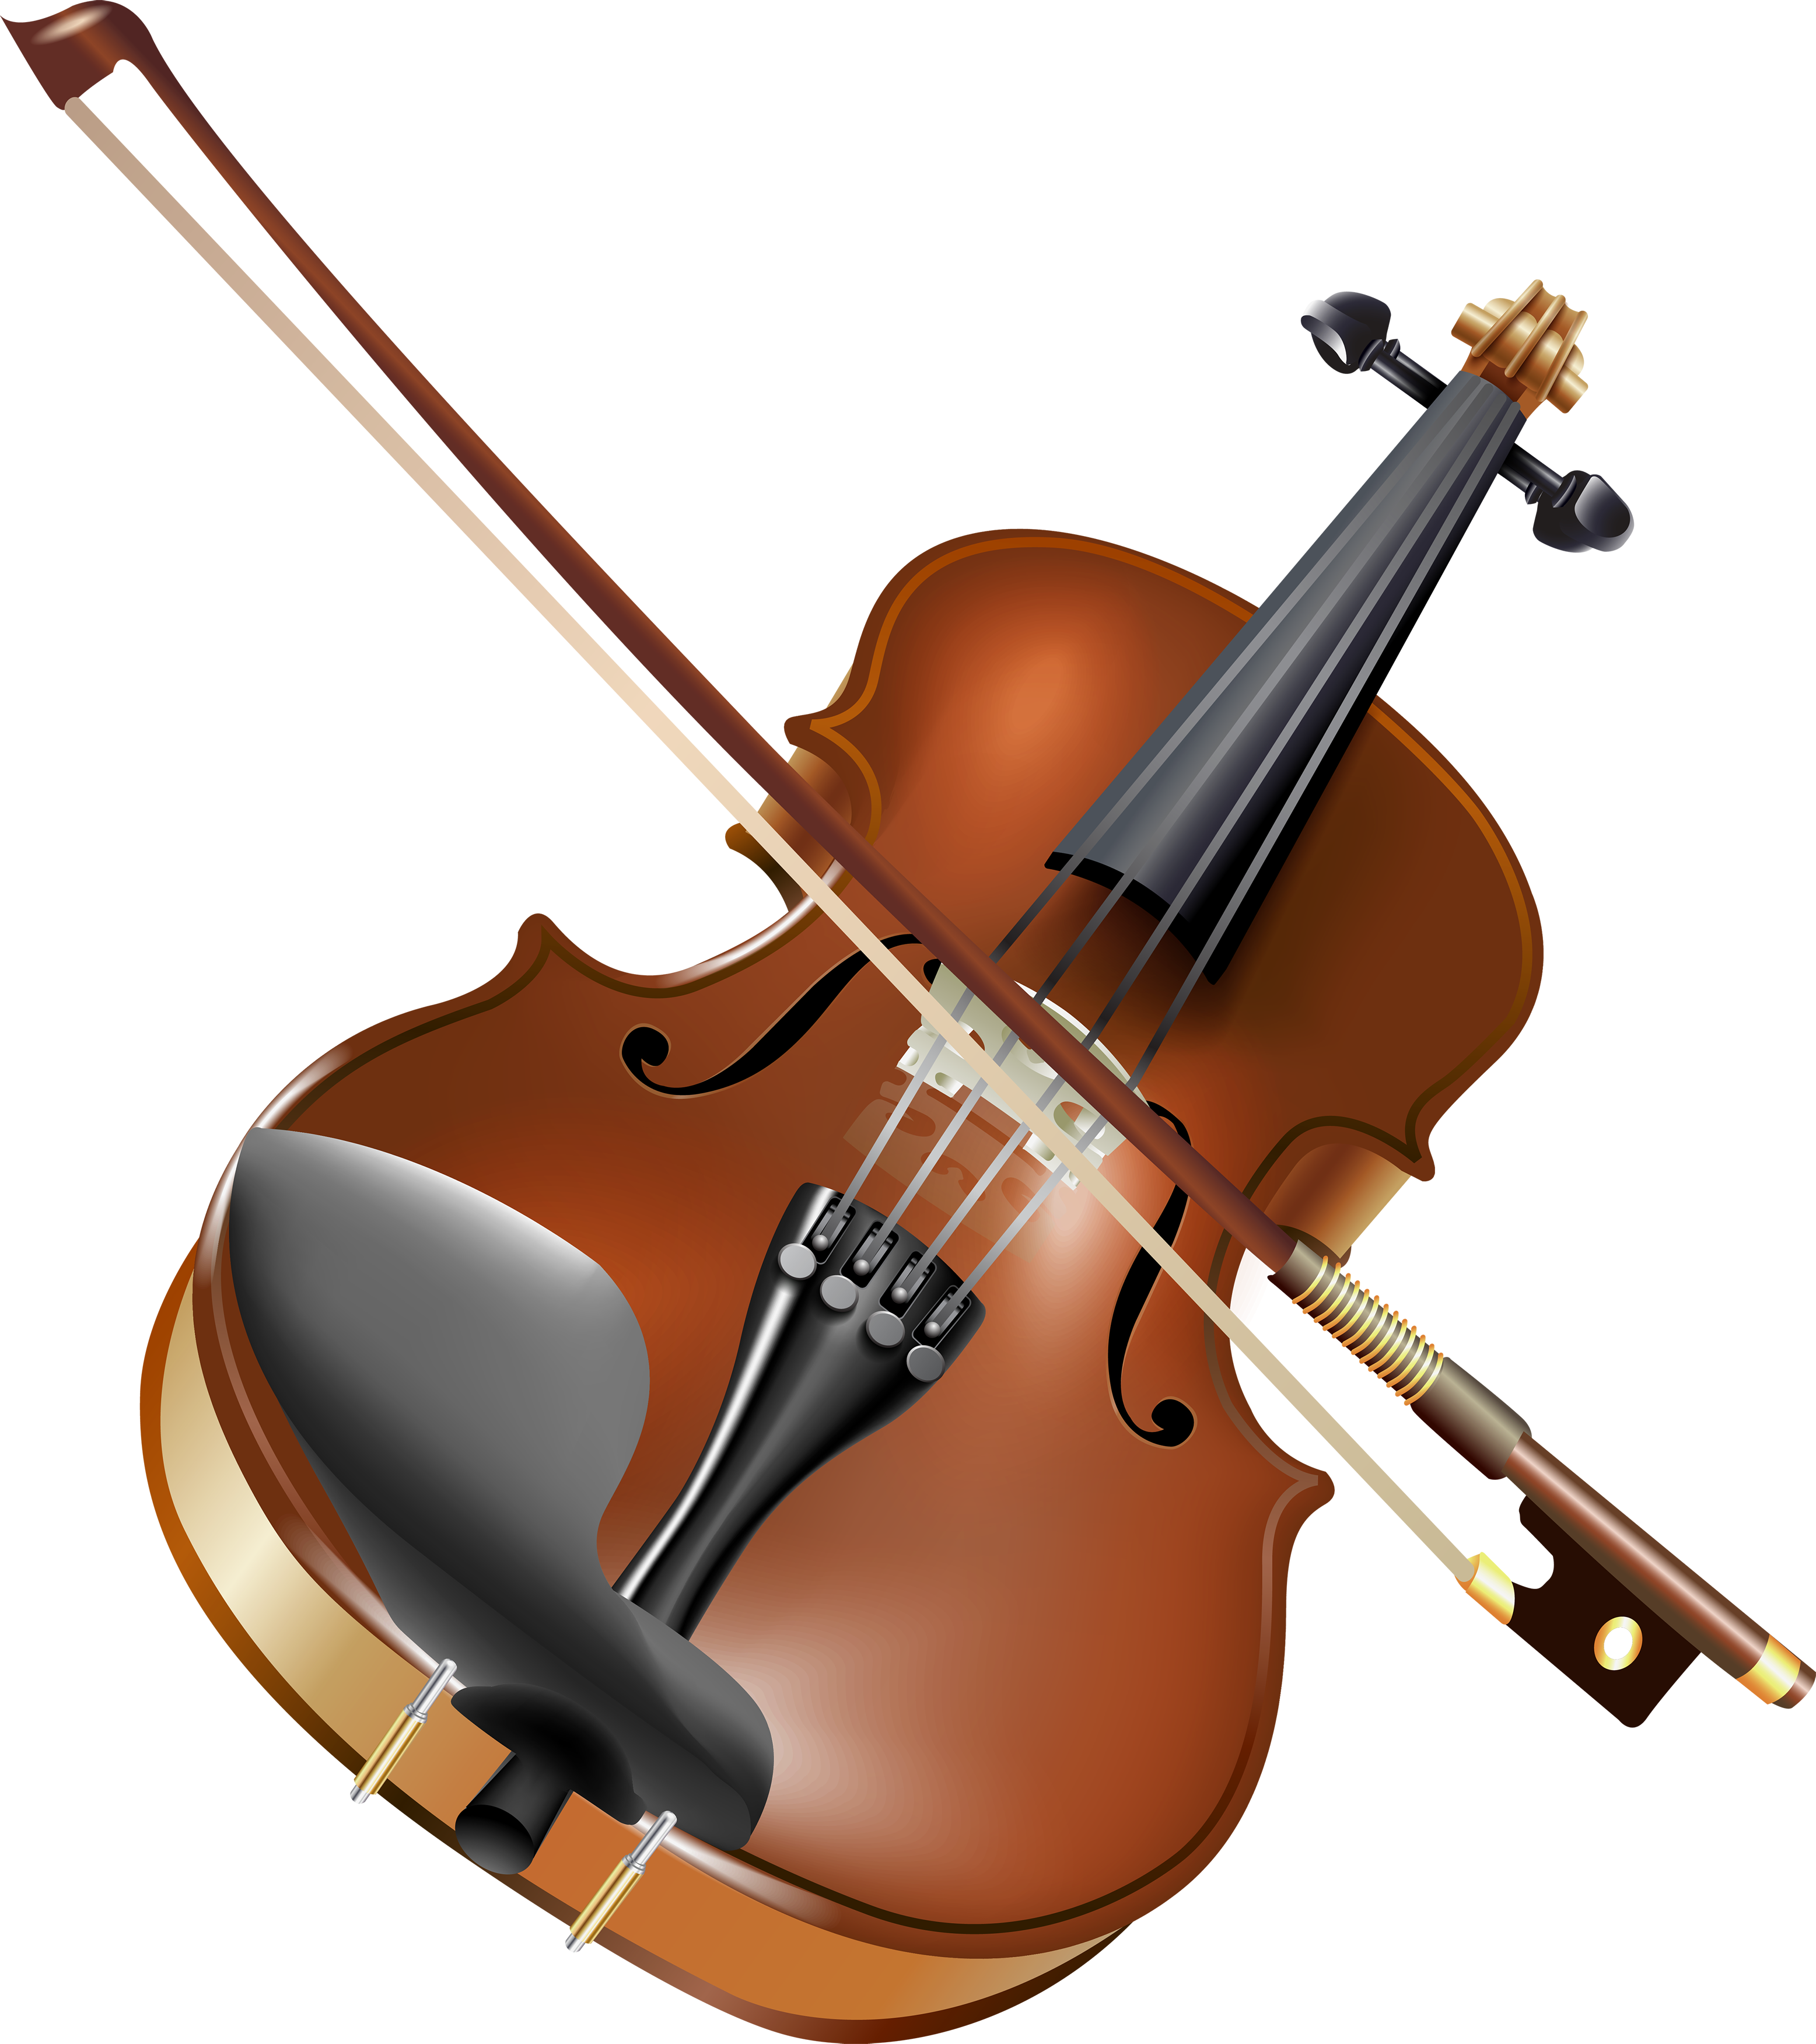 Violin png images free. Cello clipart gambar